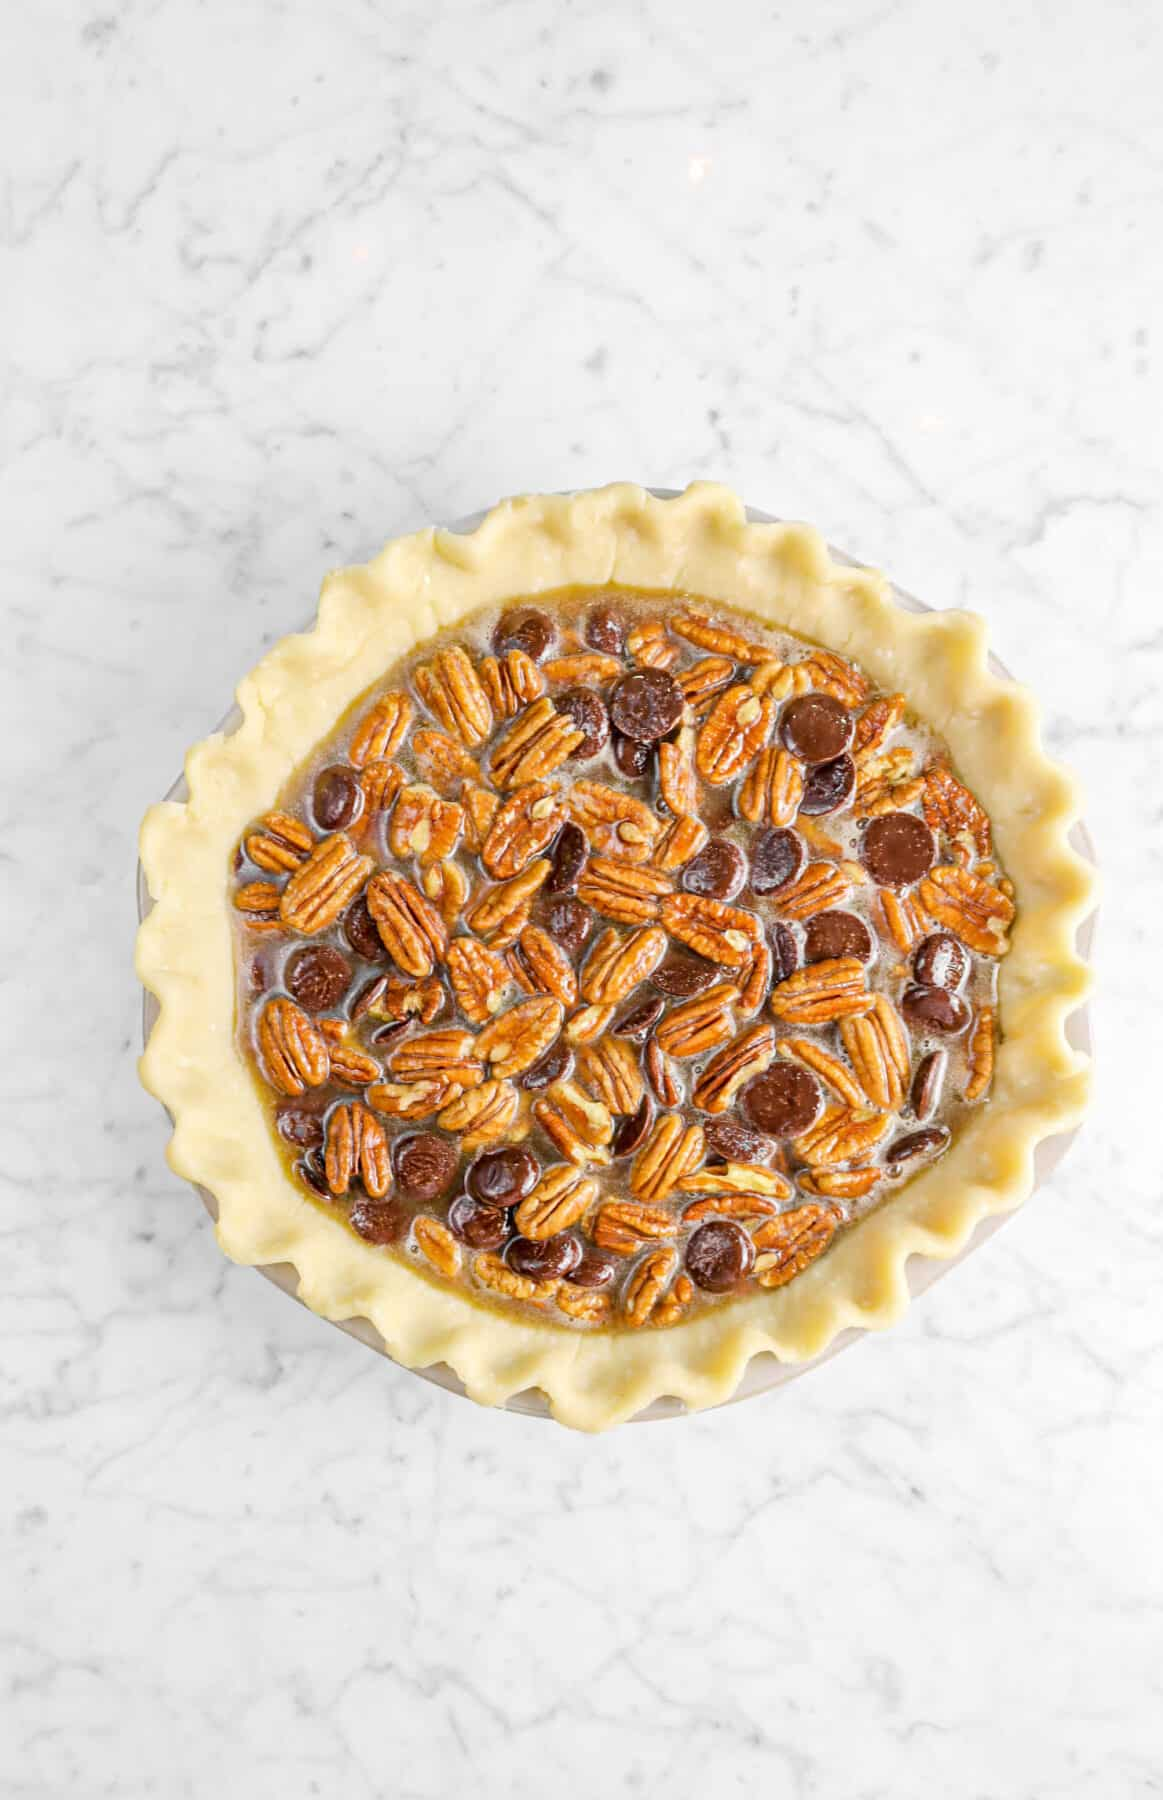 filling added to pie crust